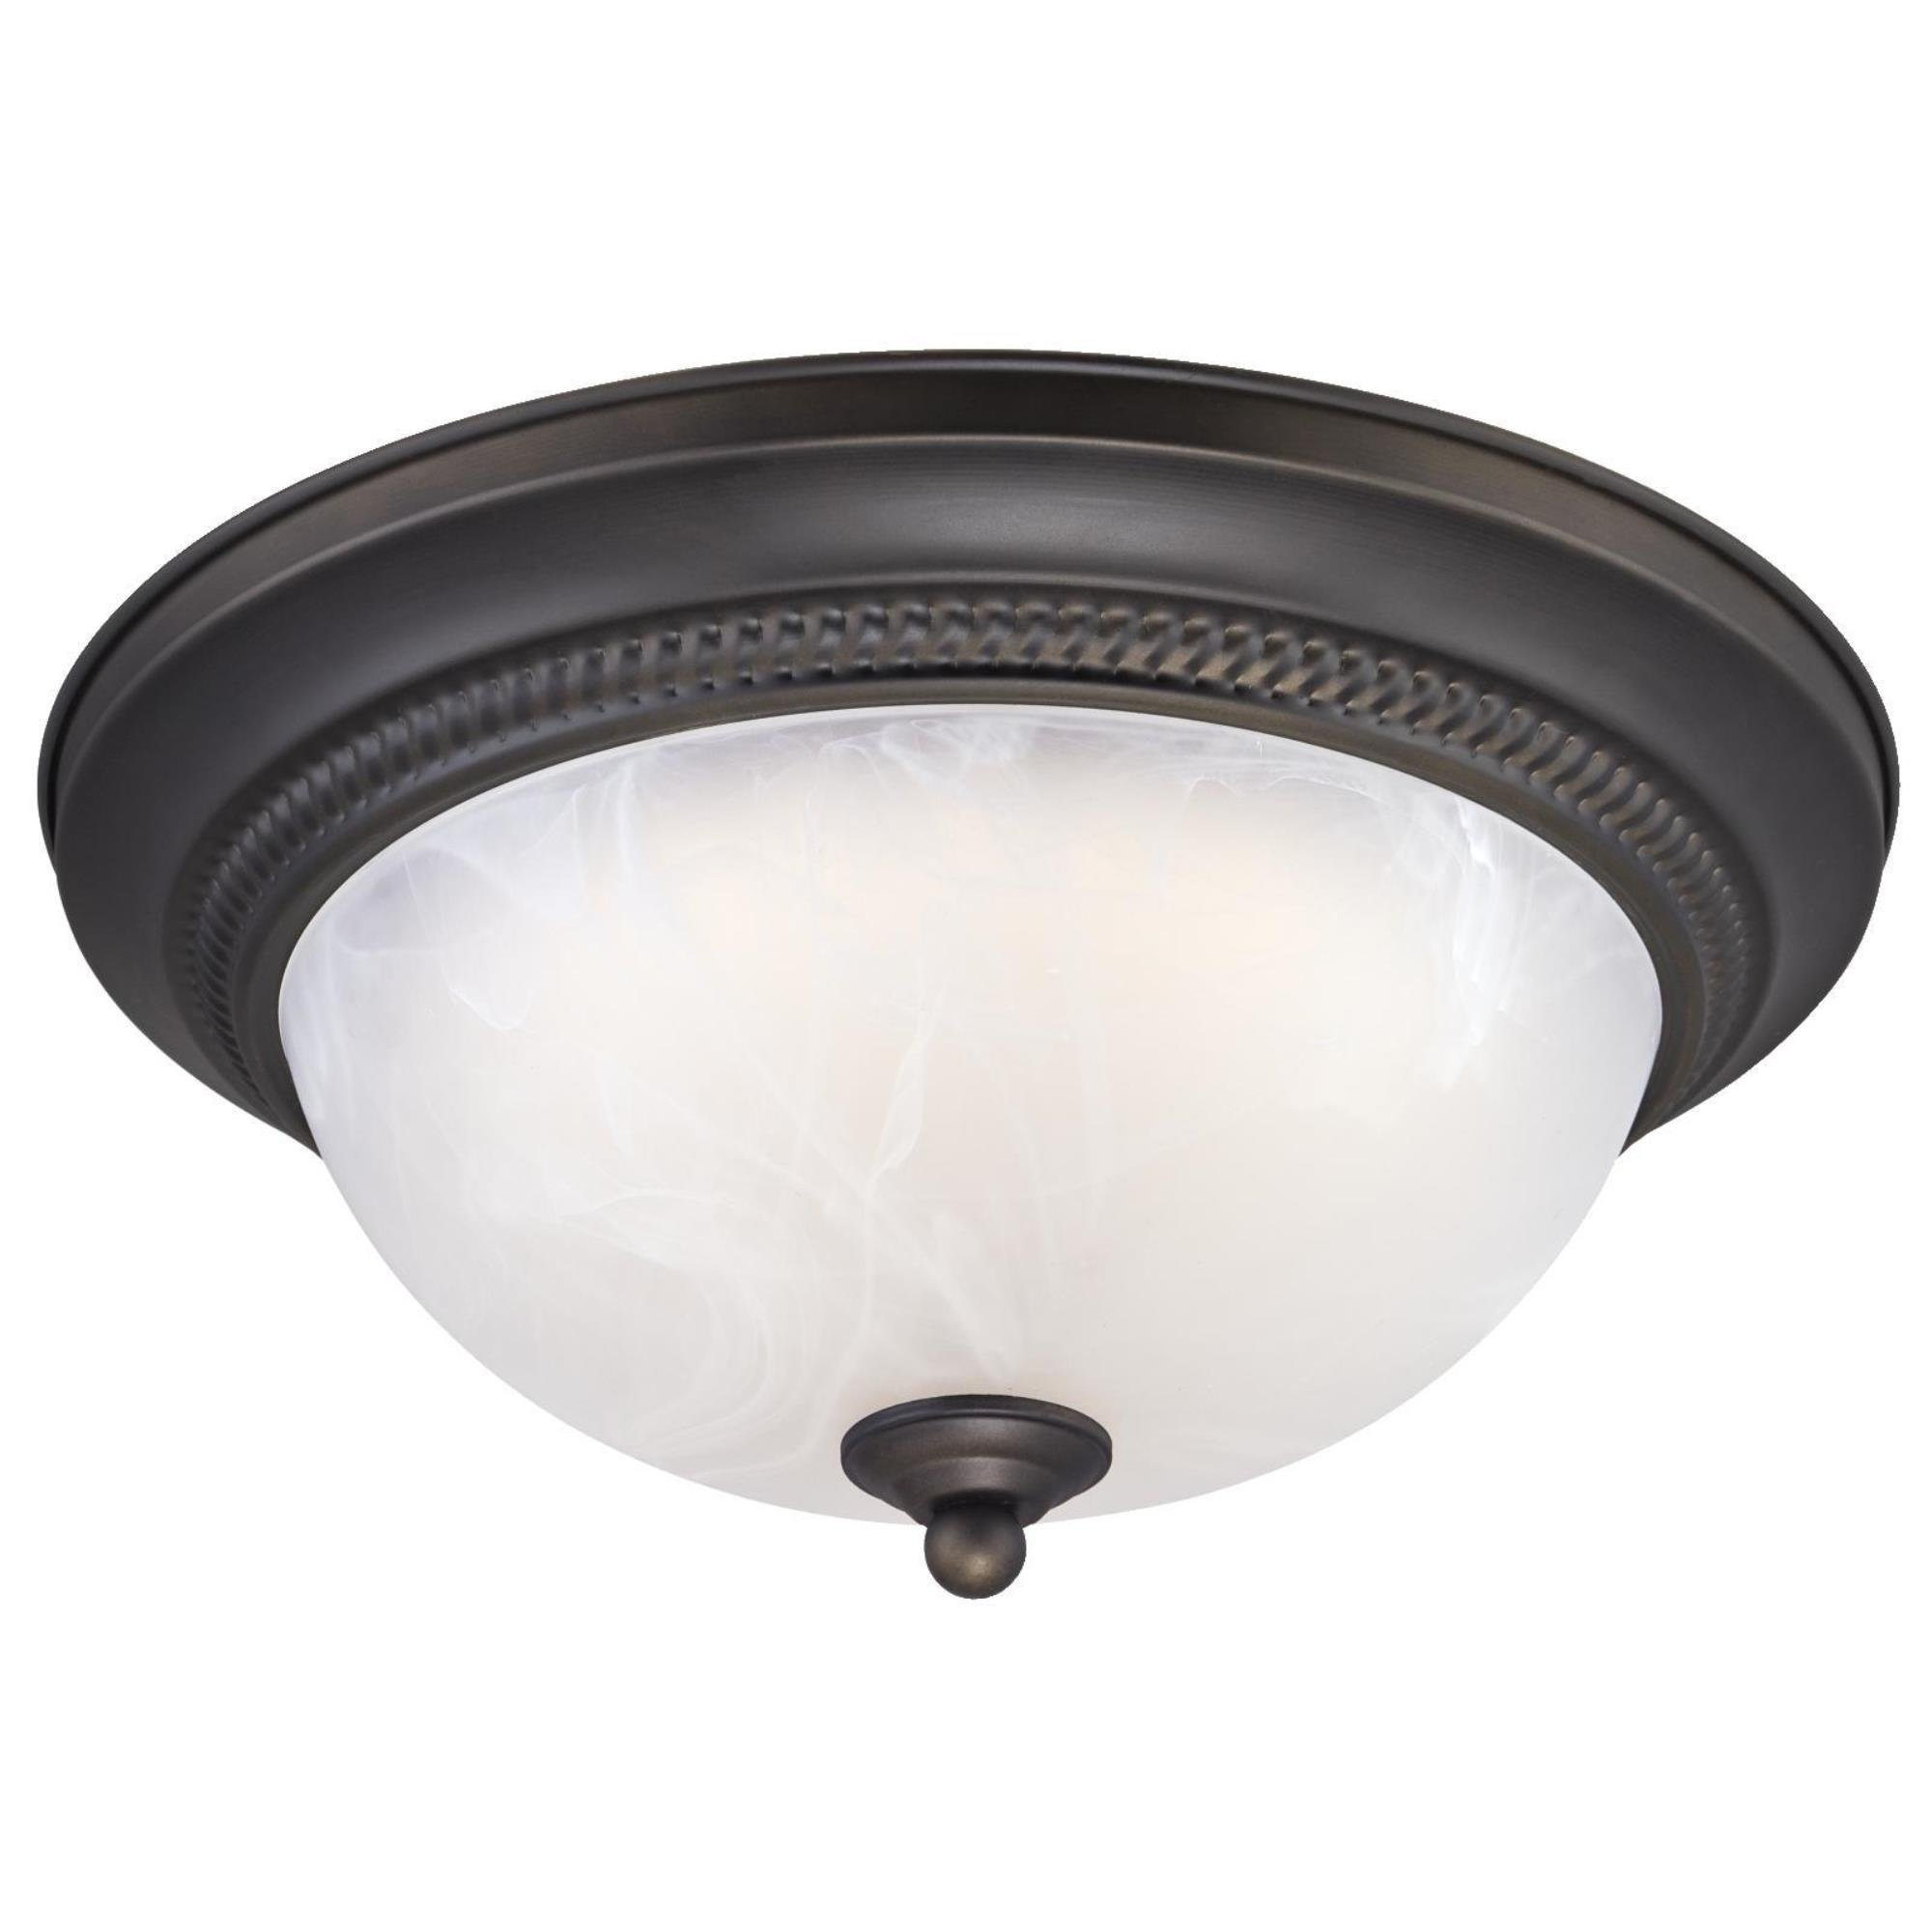 Westinghouse 6400800 11-Inch LED Indoor Flush Mount Ceiling Fixture, Oil Rubbed Bronze Finish with White Alabaster Glass